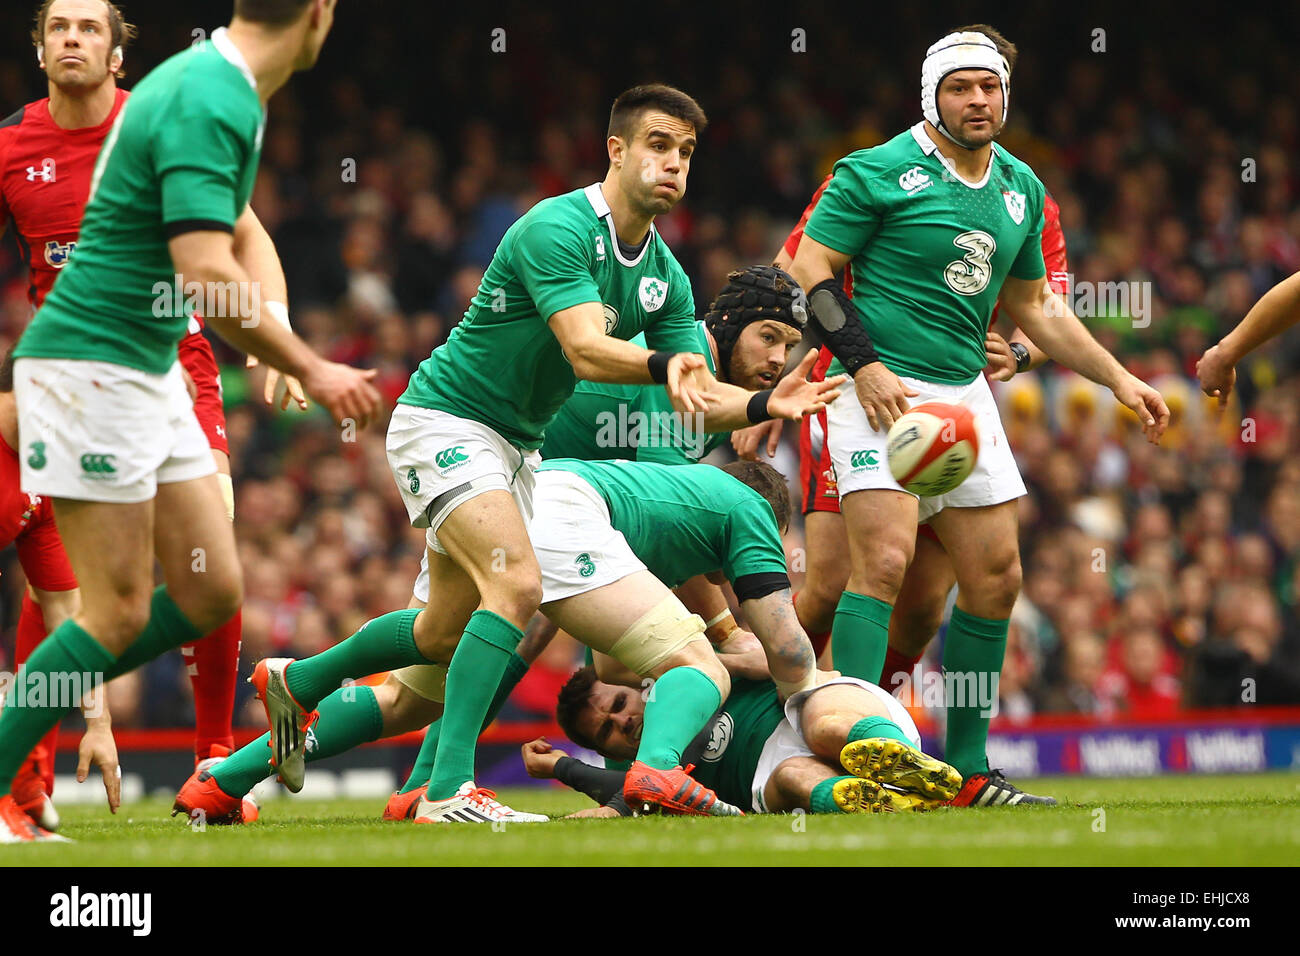 Cardiff, Pays de Galles. 14Th Mar, 2015. 6 Nations Championnat International de Rubgy. Le Pays de Galles contre Photo Stock